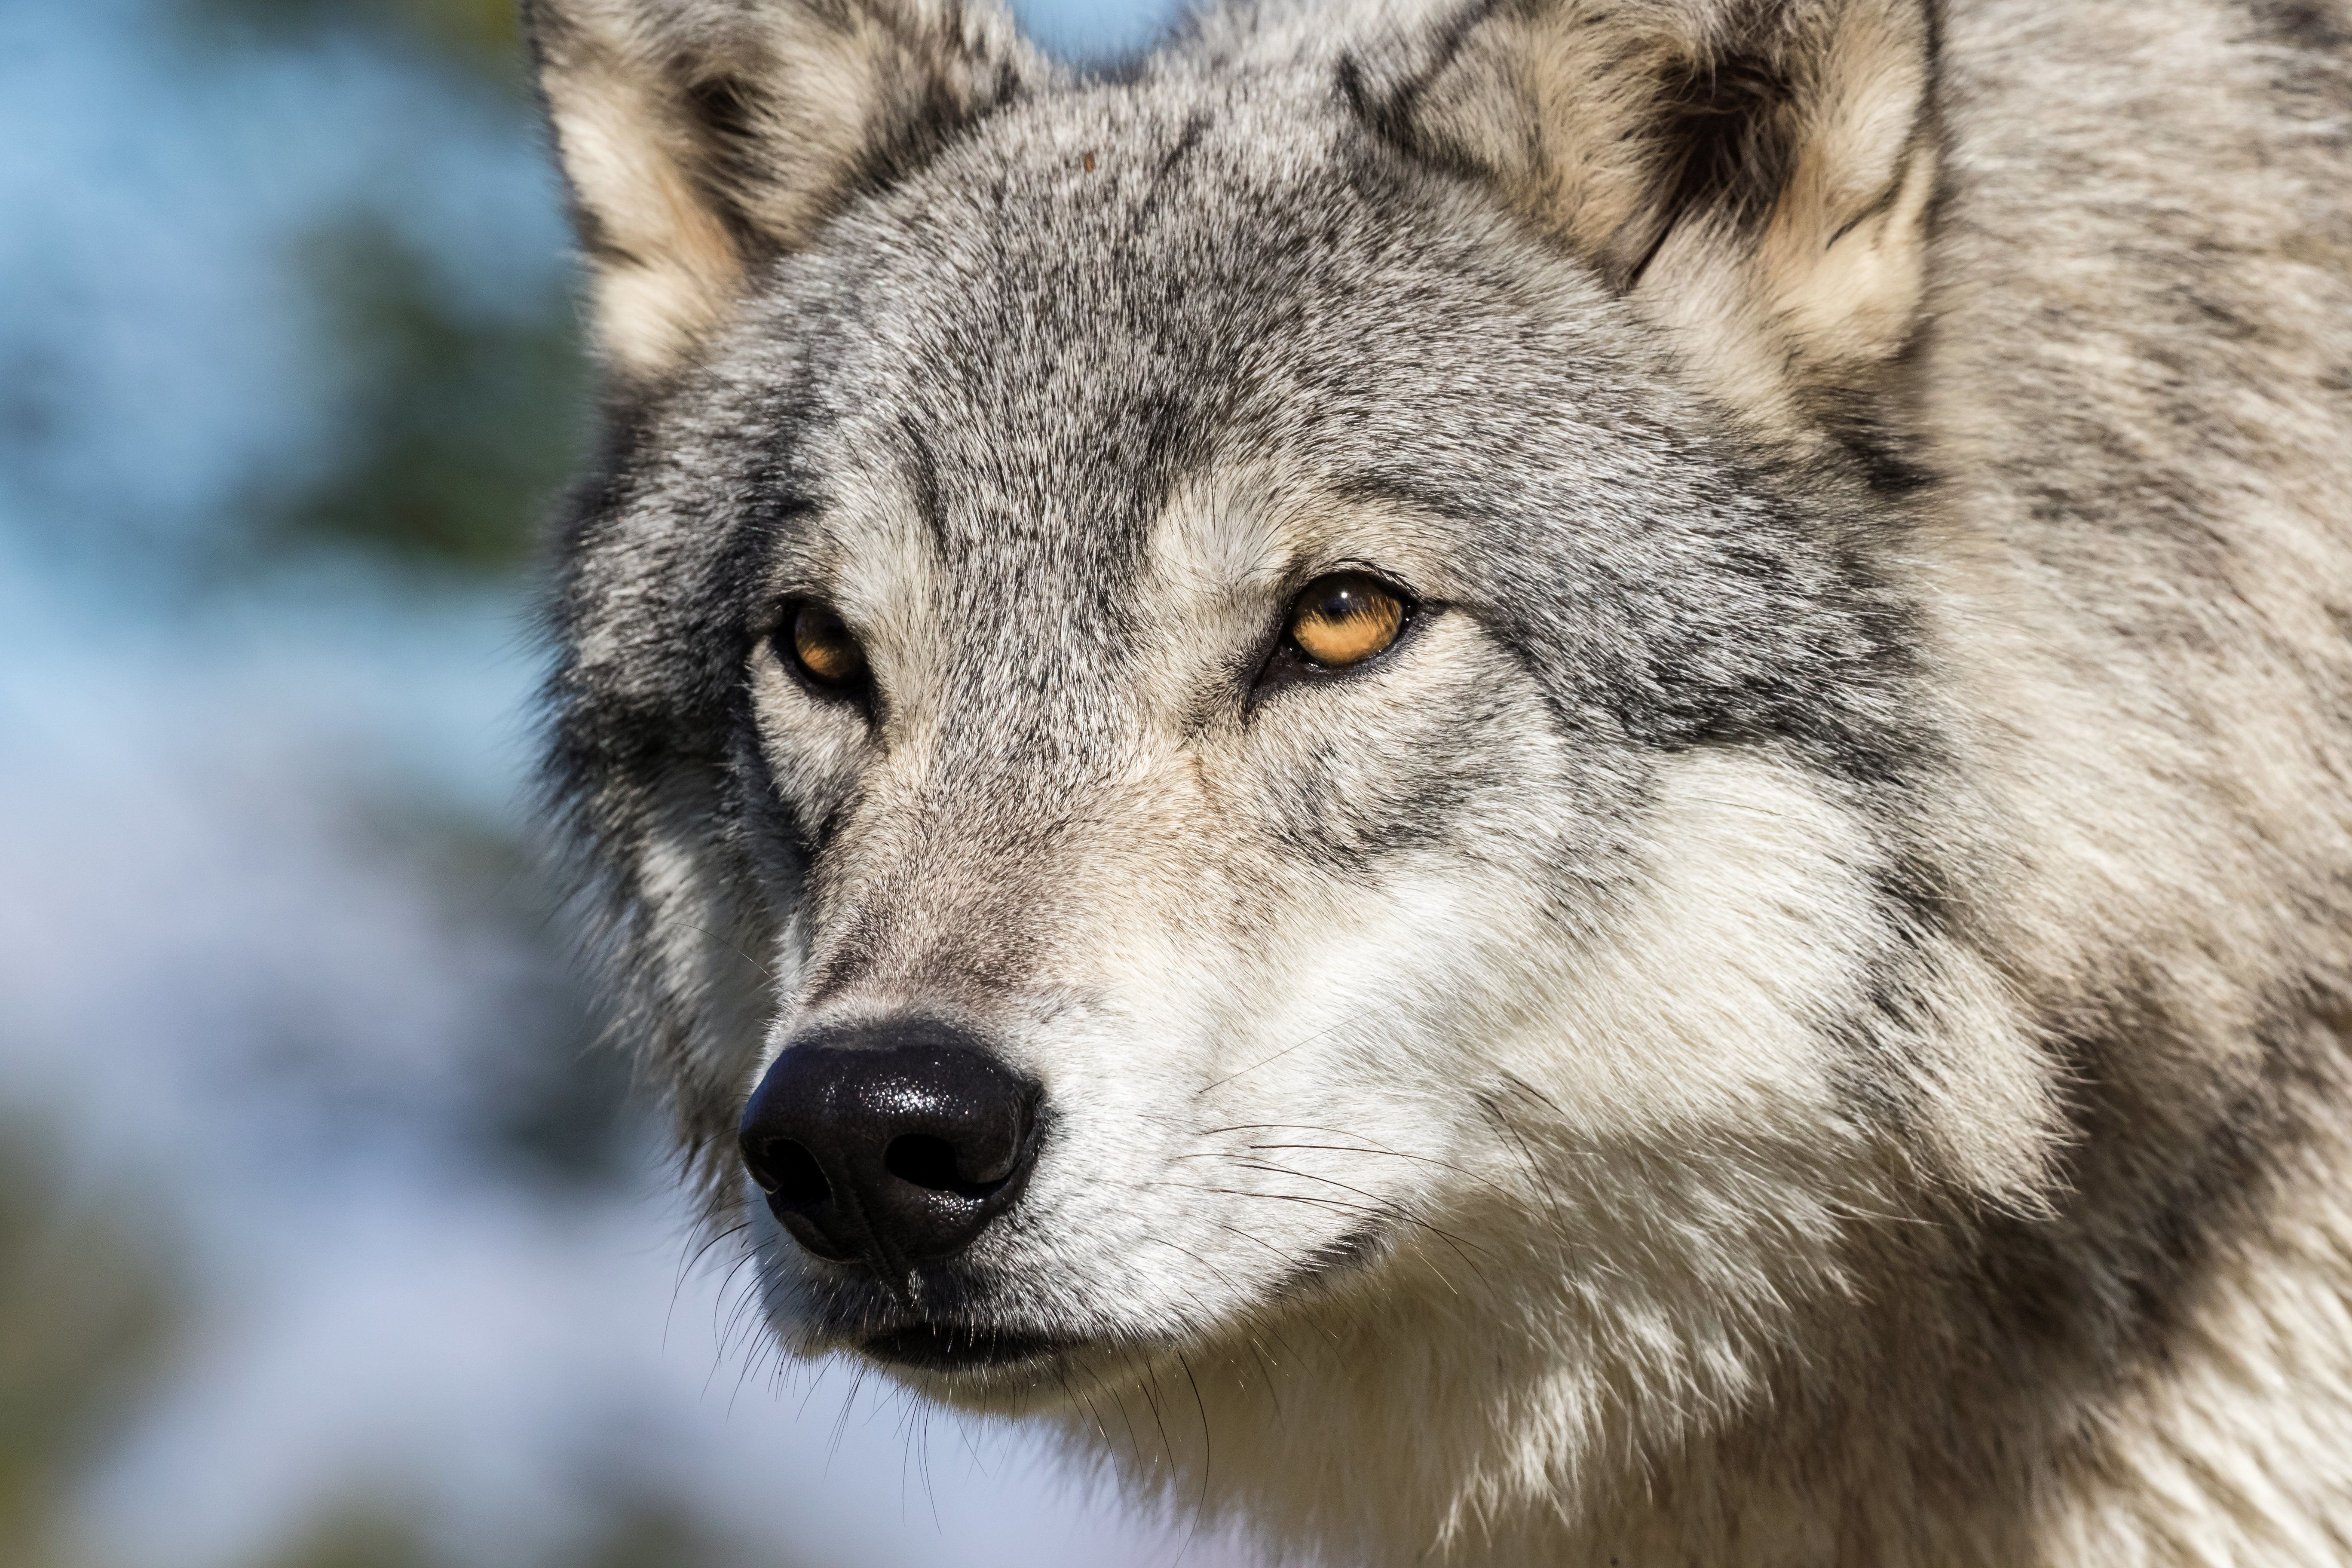 Close up portrait of a wolf staring intently